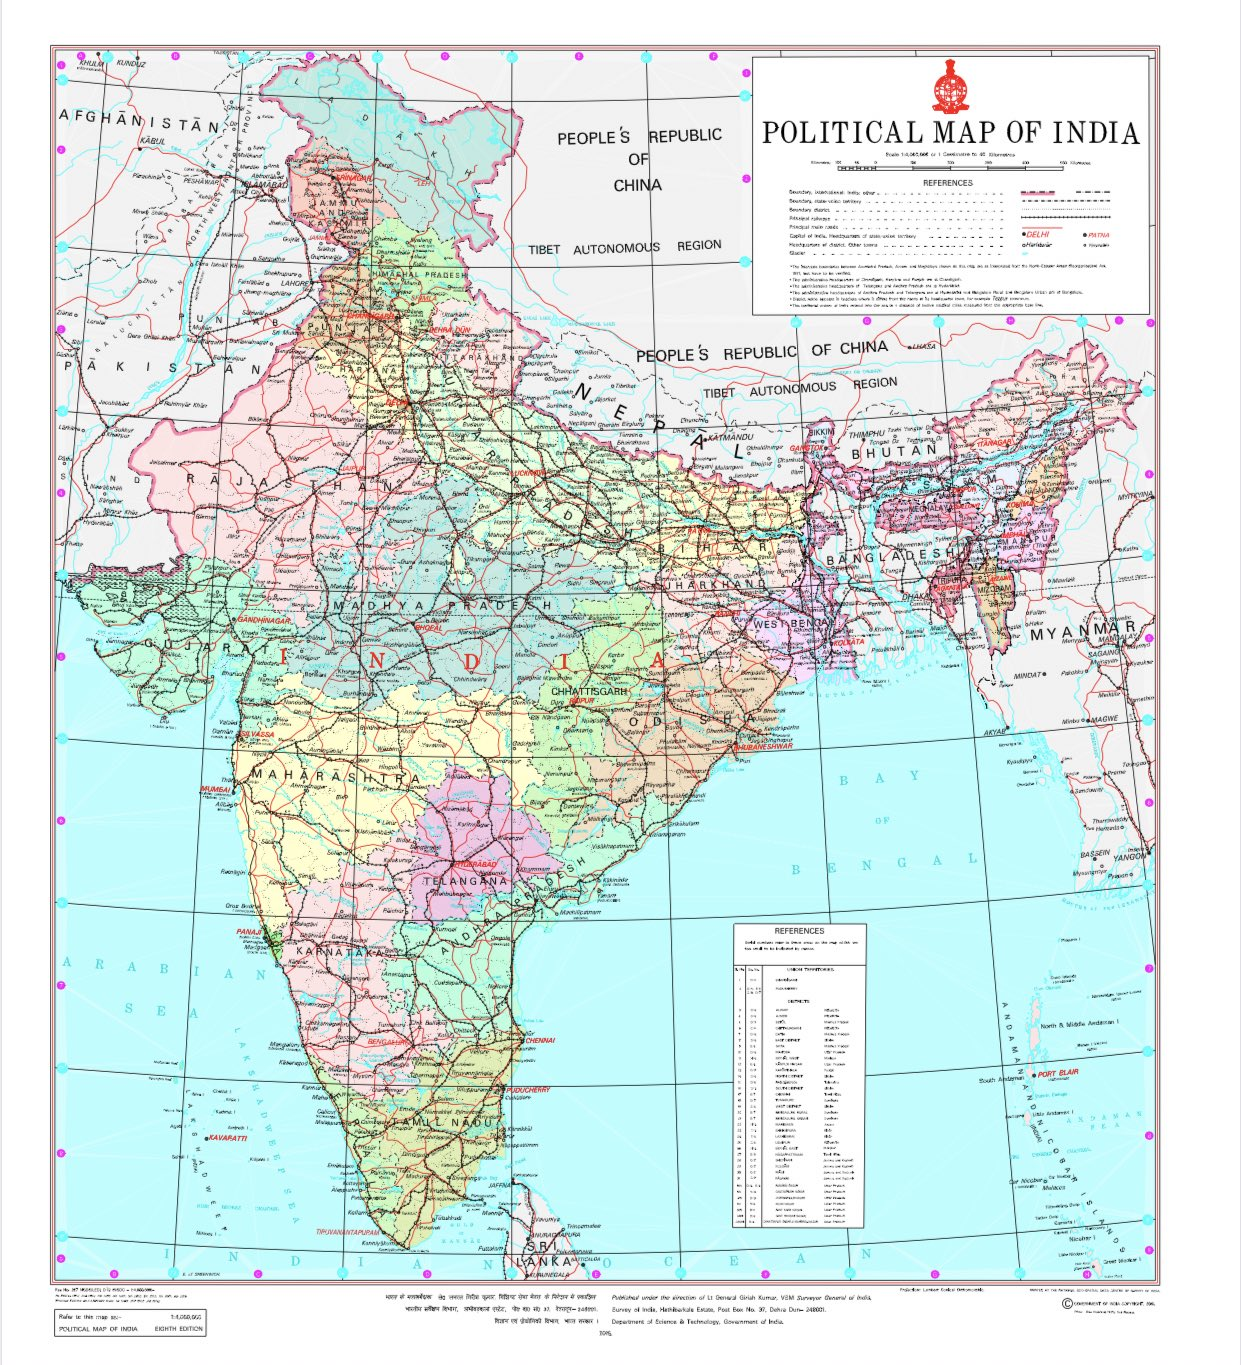 Govt releases new political map of India after J&K, Ladakh ... on india river map, india education map, eurasia europe map, india outline map, india map legend, geography of india geographical map, india wall map, colombo india map, india population density map, india fiscal map, india world map, 2014 india map, india capital map, india city map, ancient india map, india domestic map, british colonial india map, india climate map, india resource map, india topographic map,